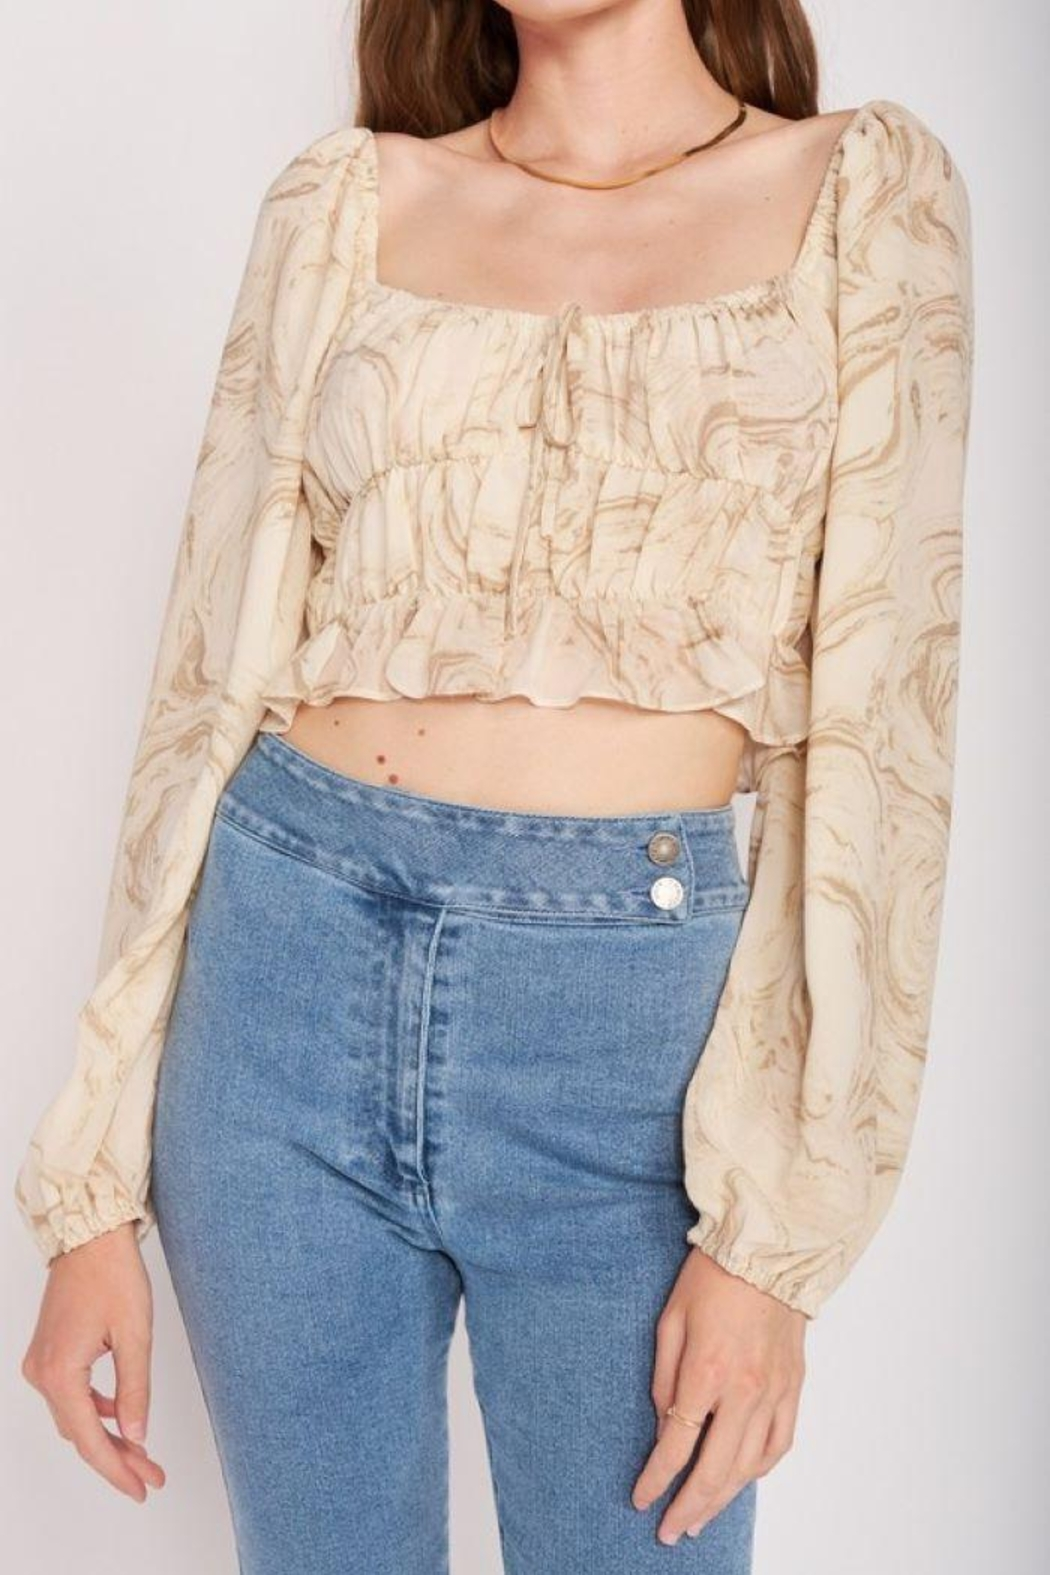 Emory Park Long Sleeve With Ruched Detail Crop Top - Front Full Image